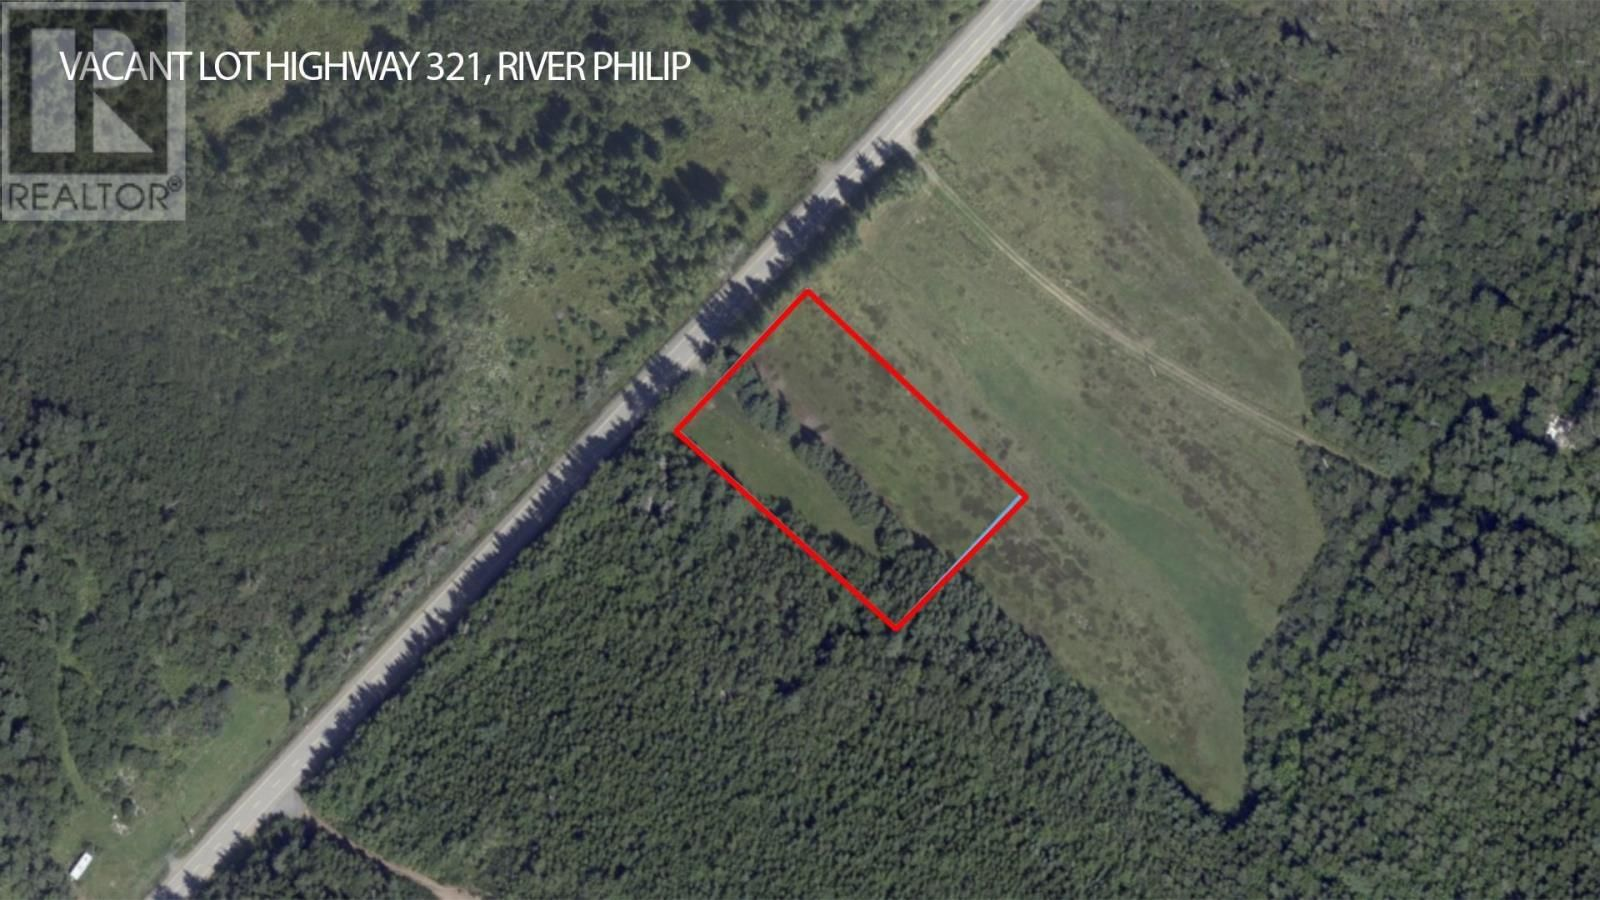 Main Photo: VL Highway 321 in River Philip: Vacant Land for sale : MLS®# 202124835